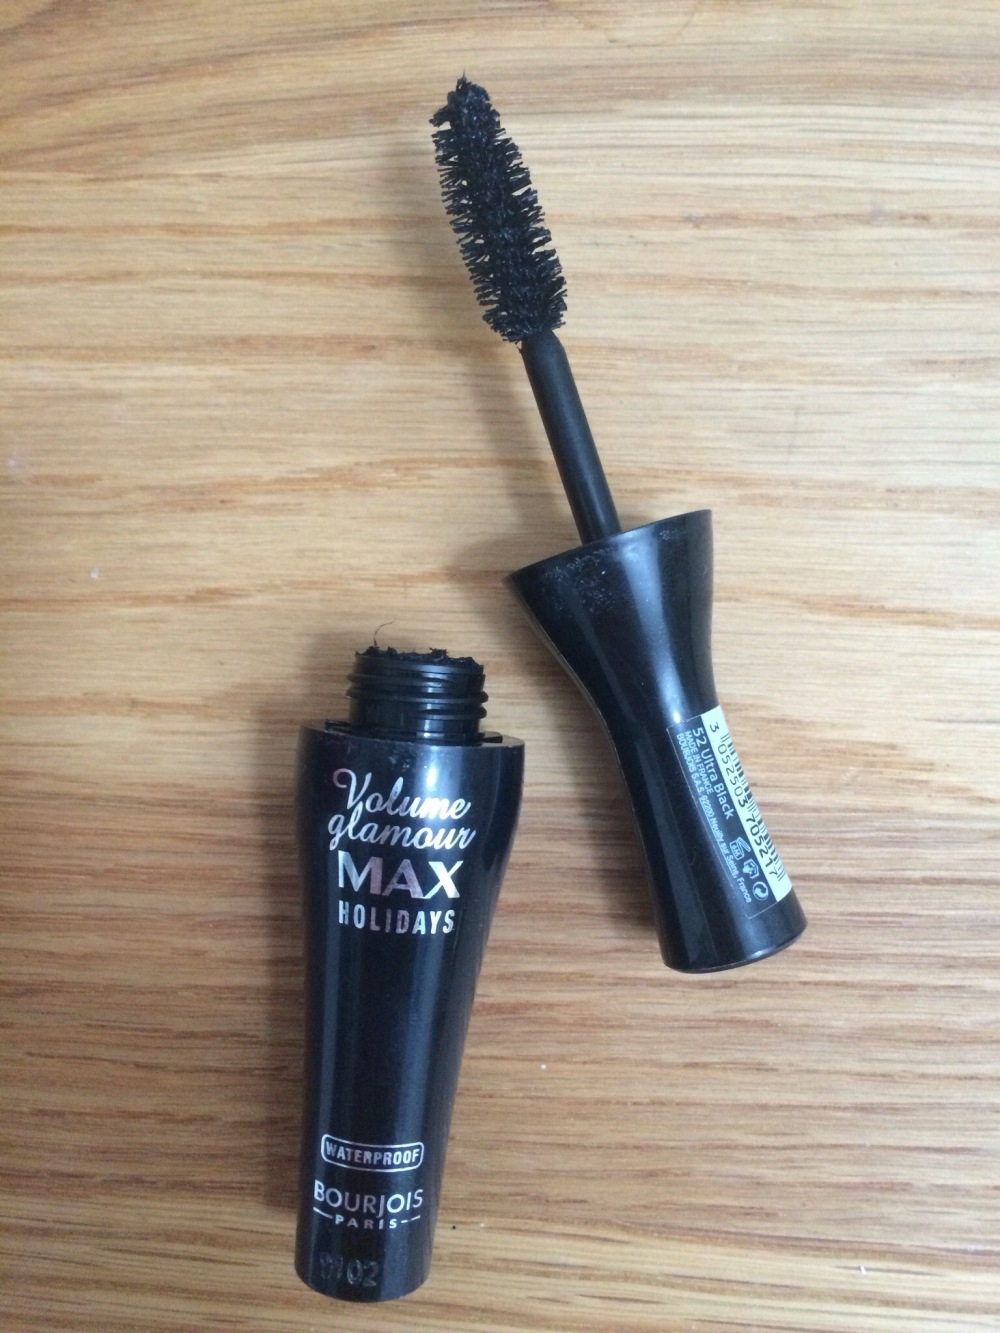 Spend or Save beauty tag Bourjois Holidays Max Mascara